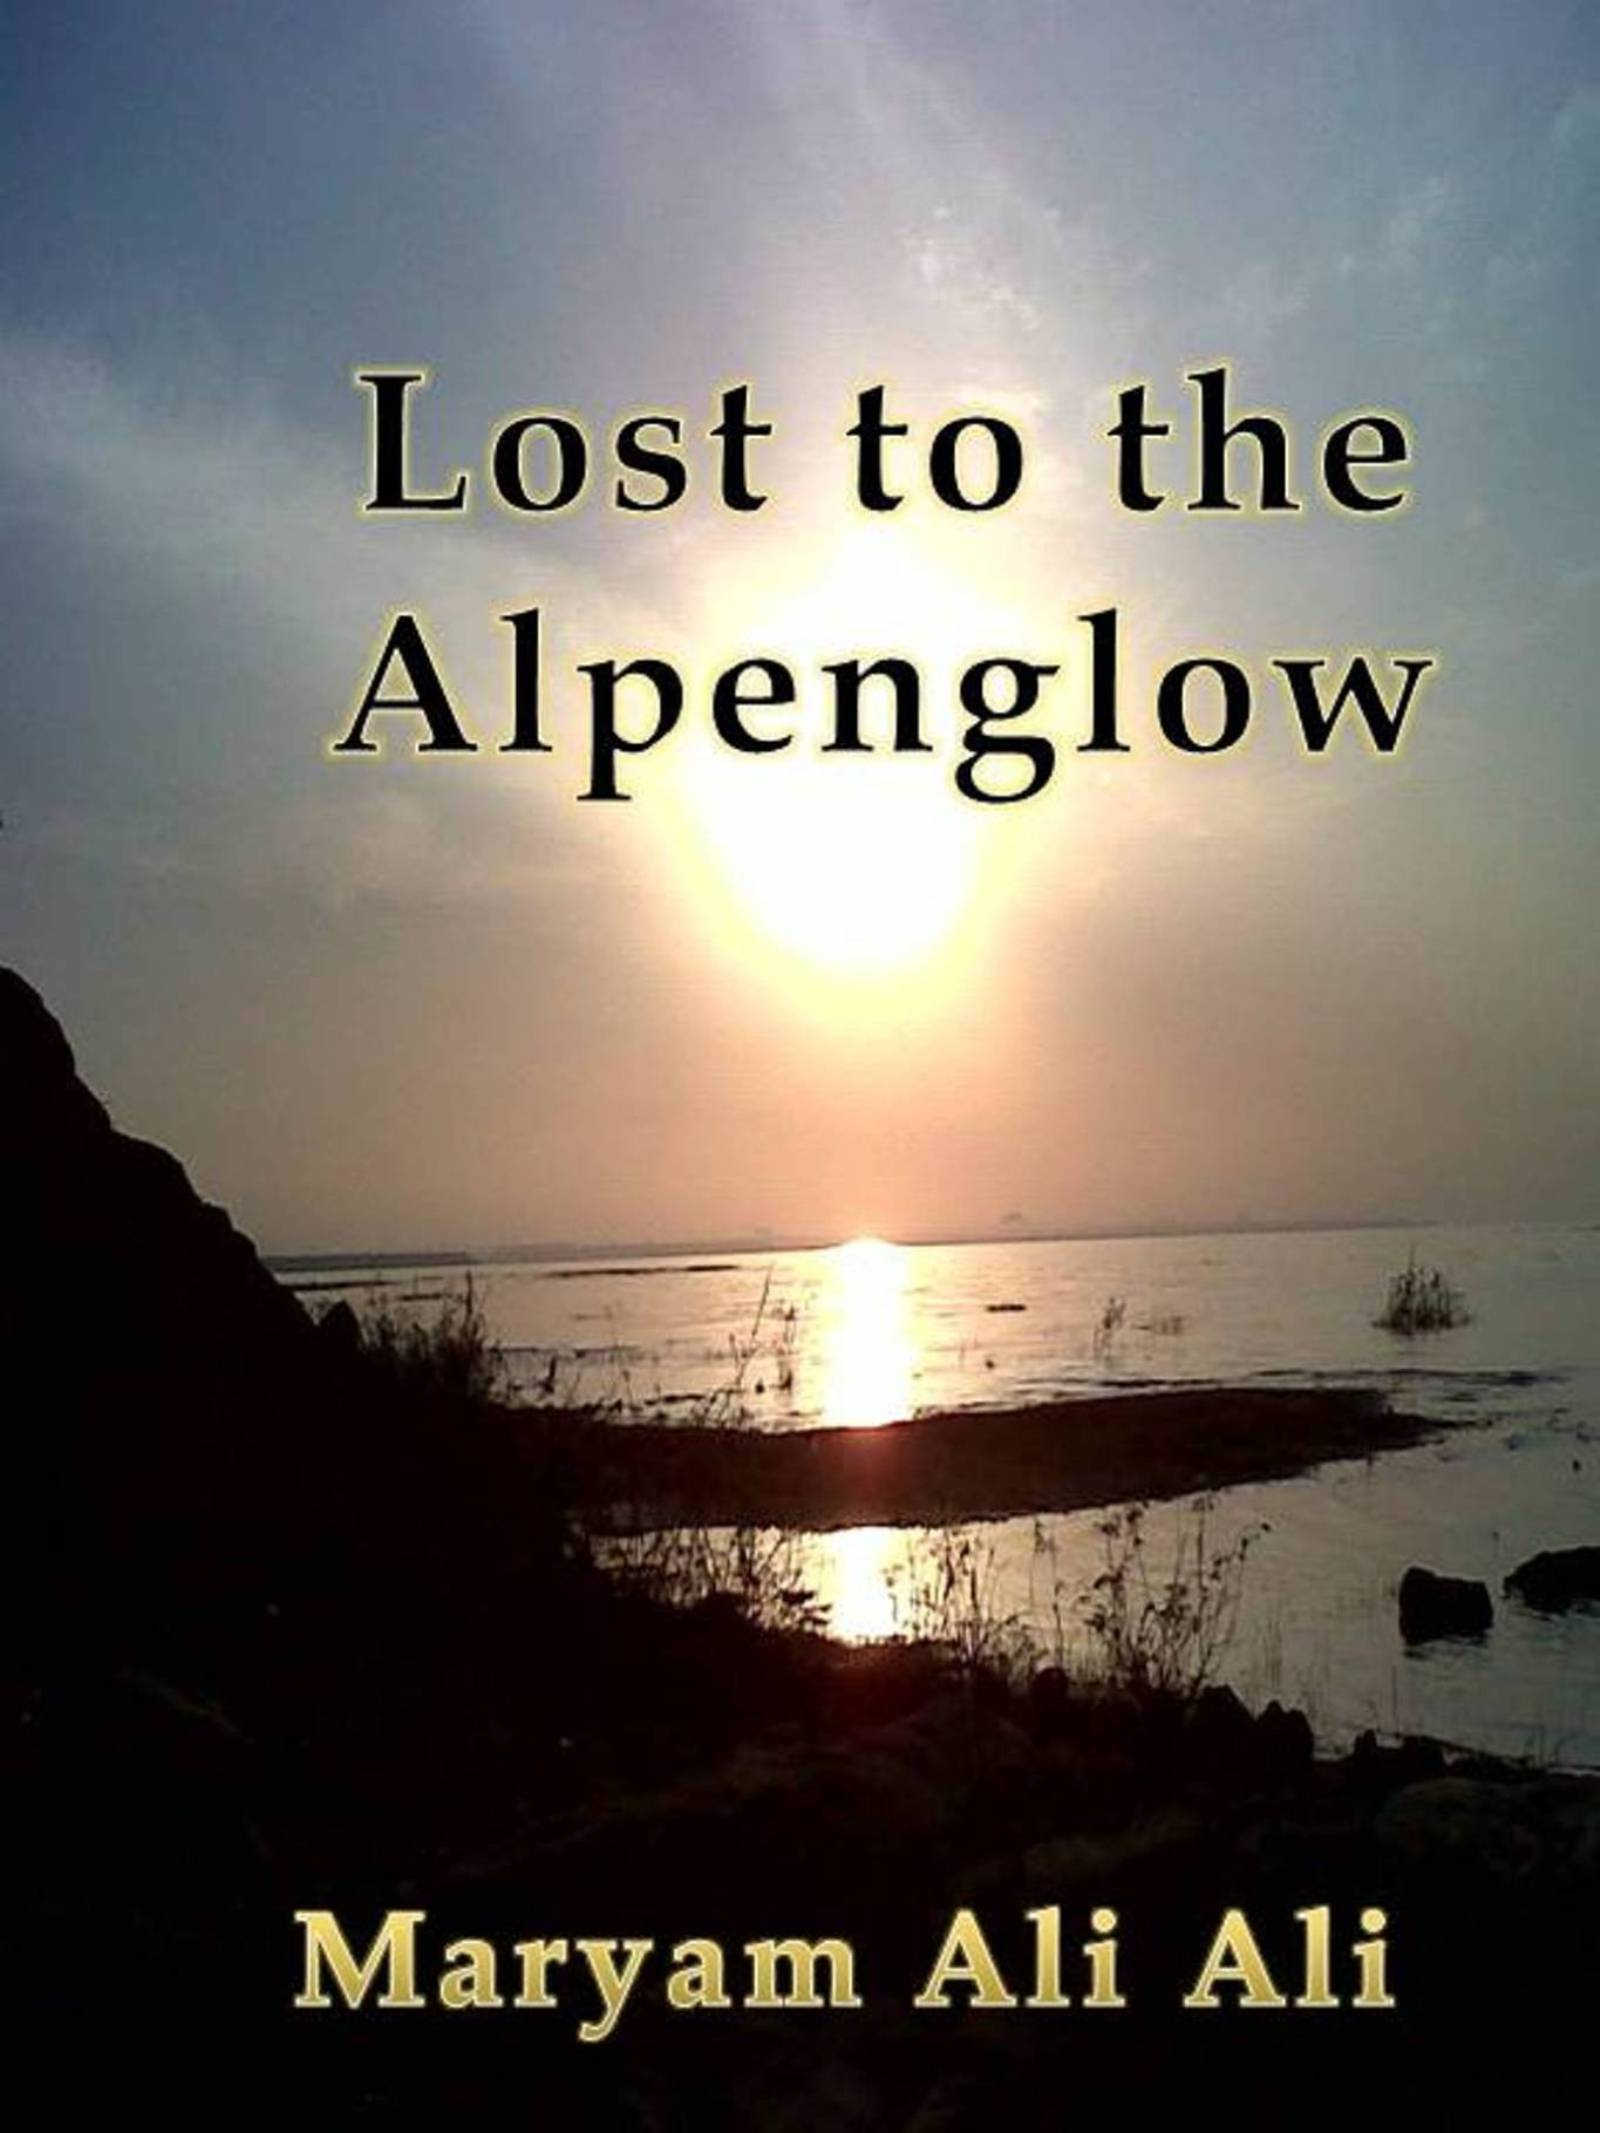 Lost to the Alpenglow  by  Maryam Ali Ali